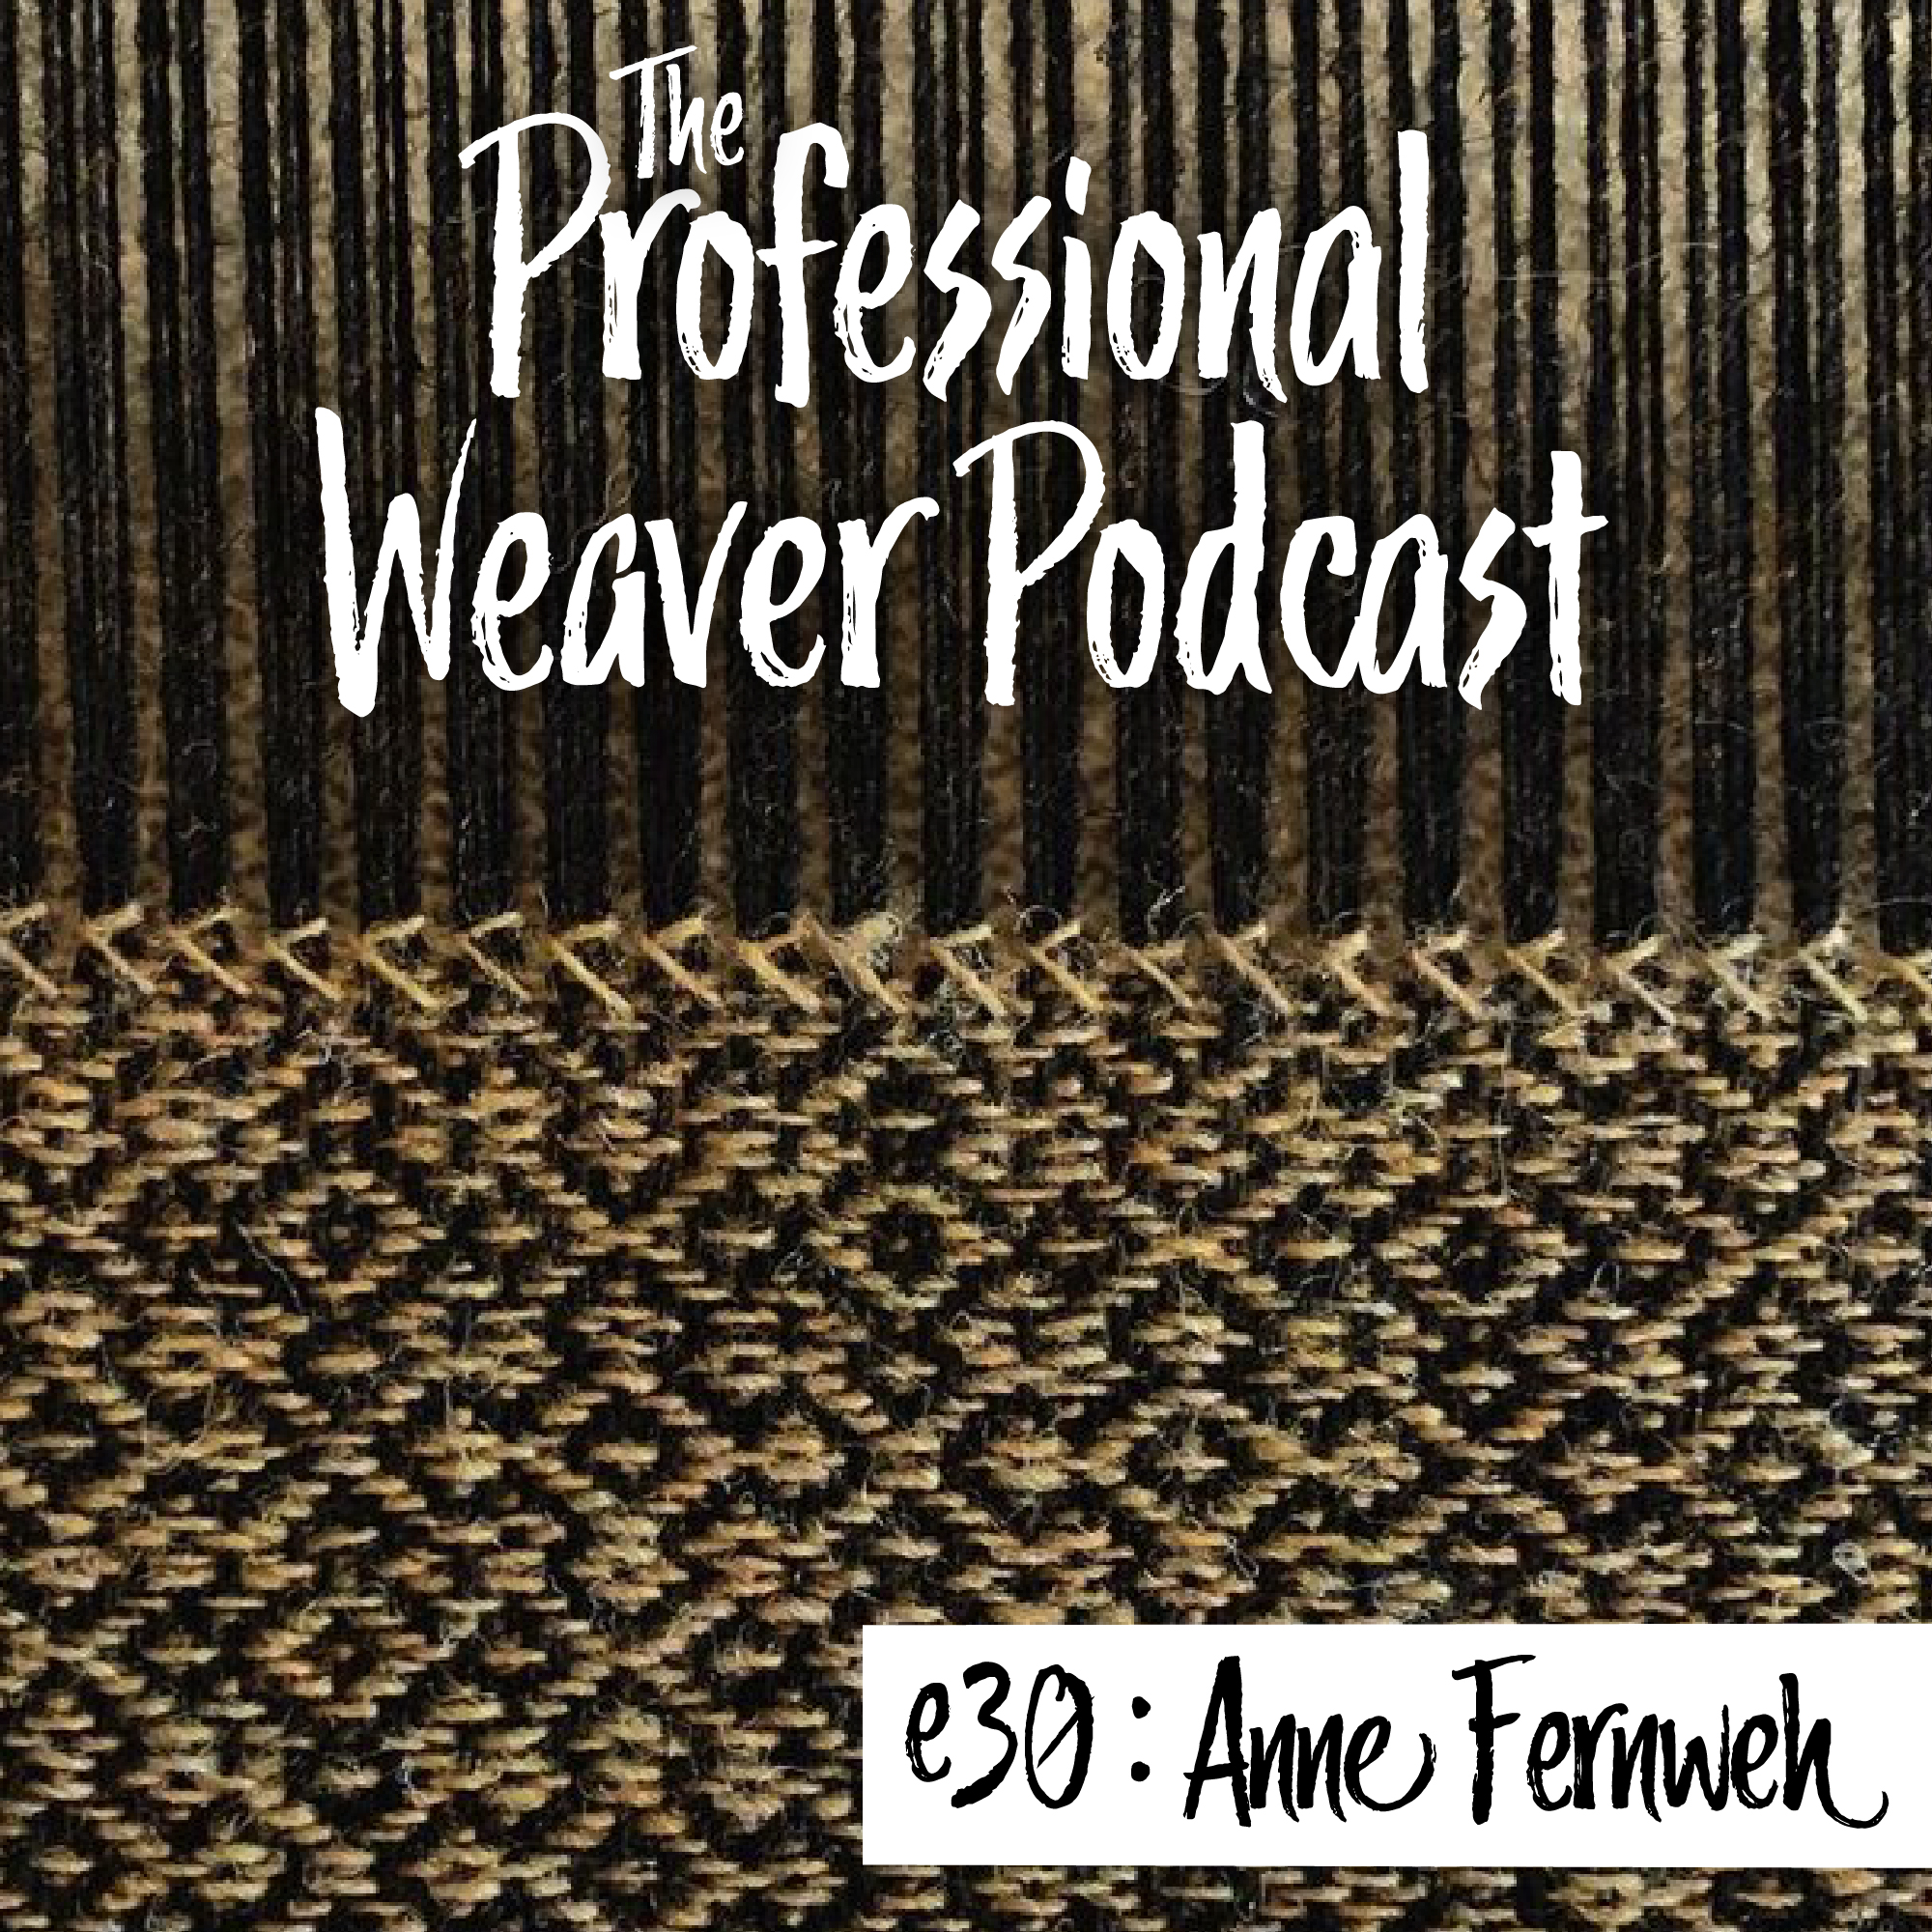 S1E30 : Anne Fernweh on fiber magic, starting her business, and the pros and cons of weaving on older looms.